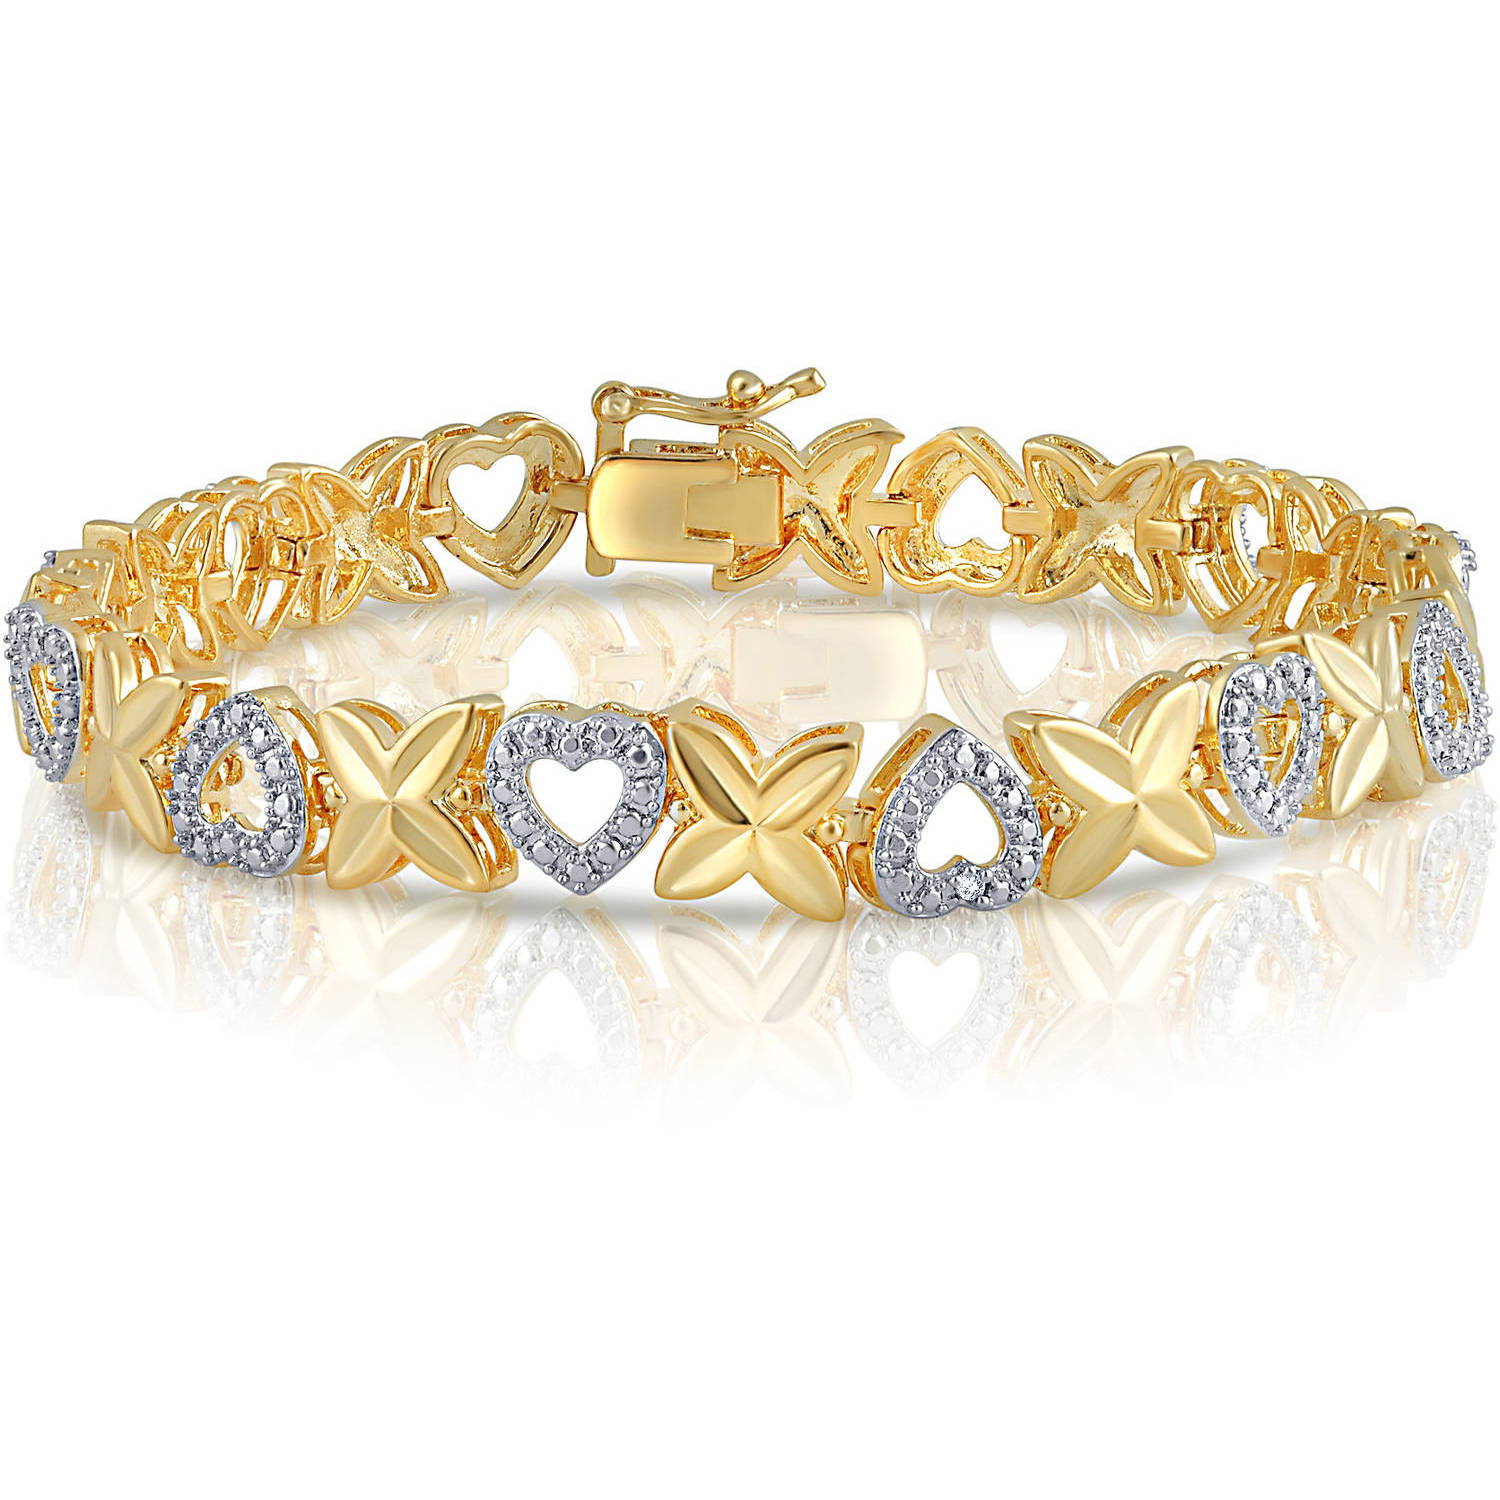 Diamond Accent Gold Tone Plated Brass Heart and Leaf Bracelet,7.5""